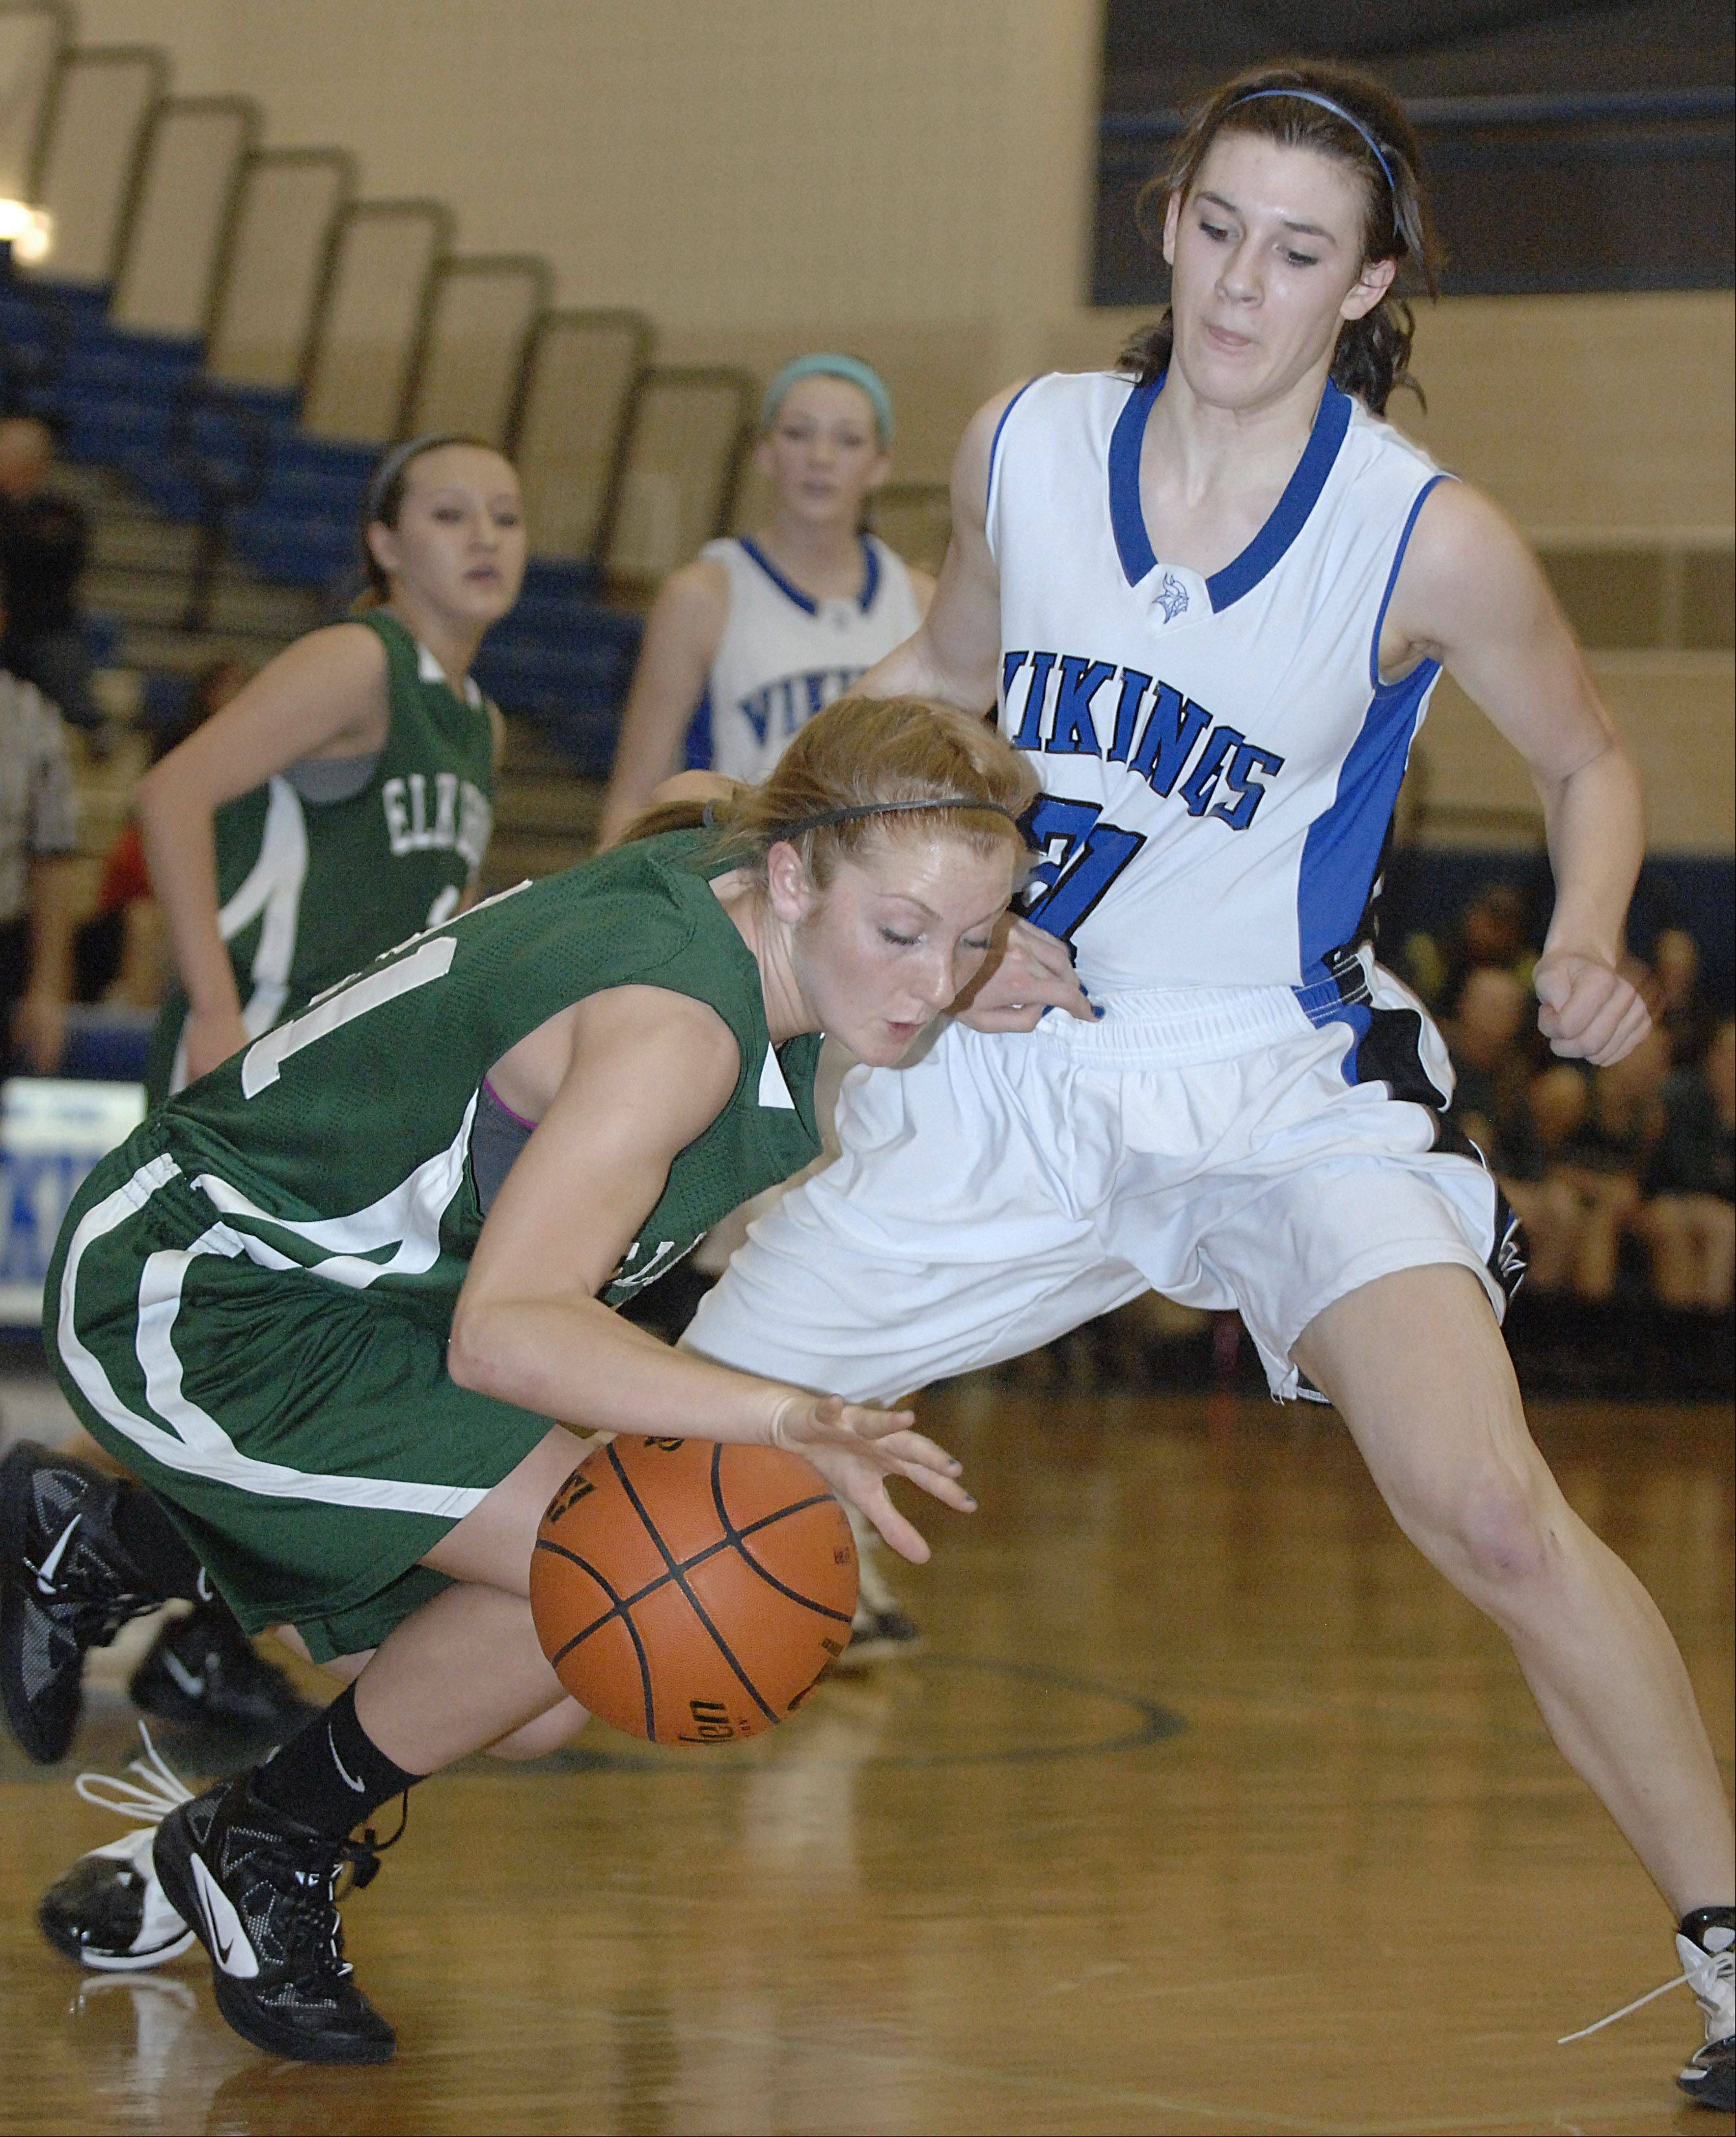 Elk Grove's Kelly Naughton keeps her dibble alive despite pressure from Geneva's Sami Pawlak last season in regional championship game action.